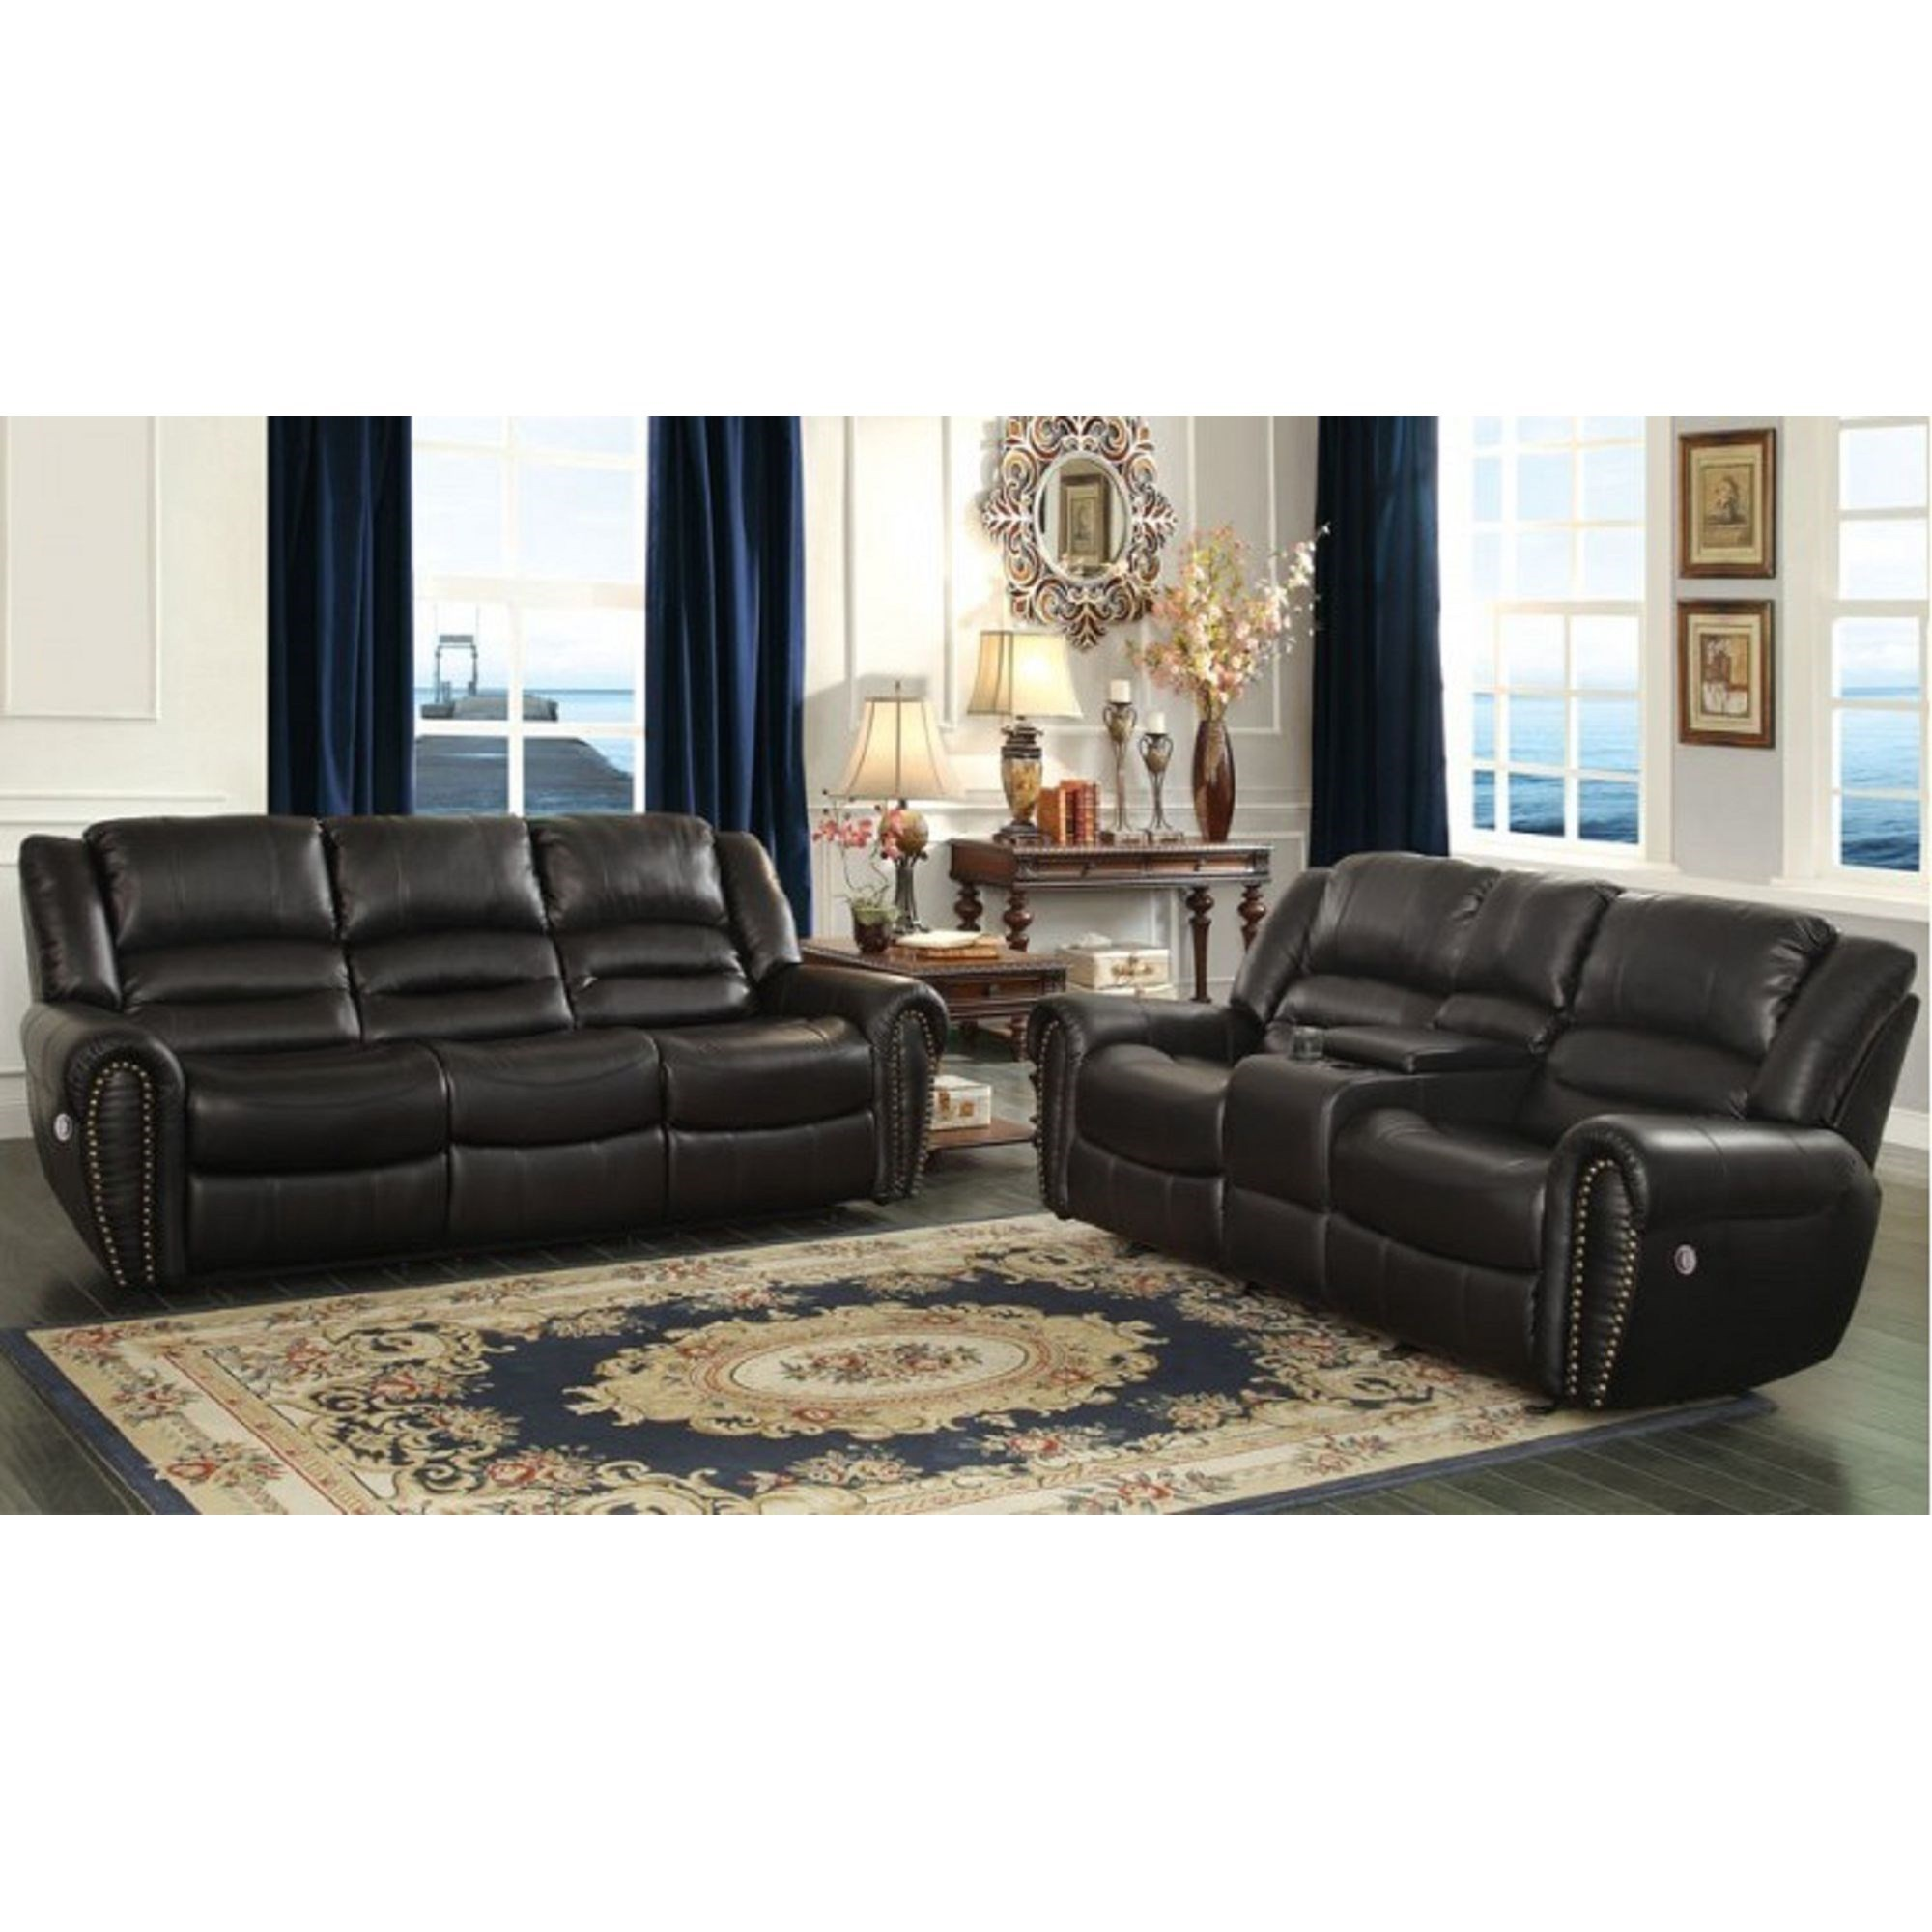 Homelegance Center Hill Traditional Power Reclining Living Room Group Value City Furniture